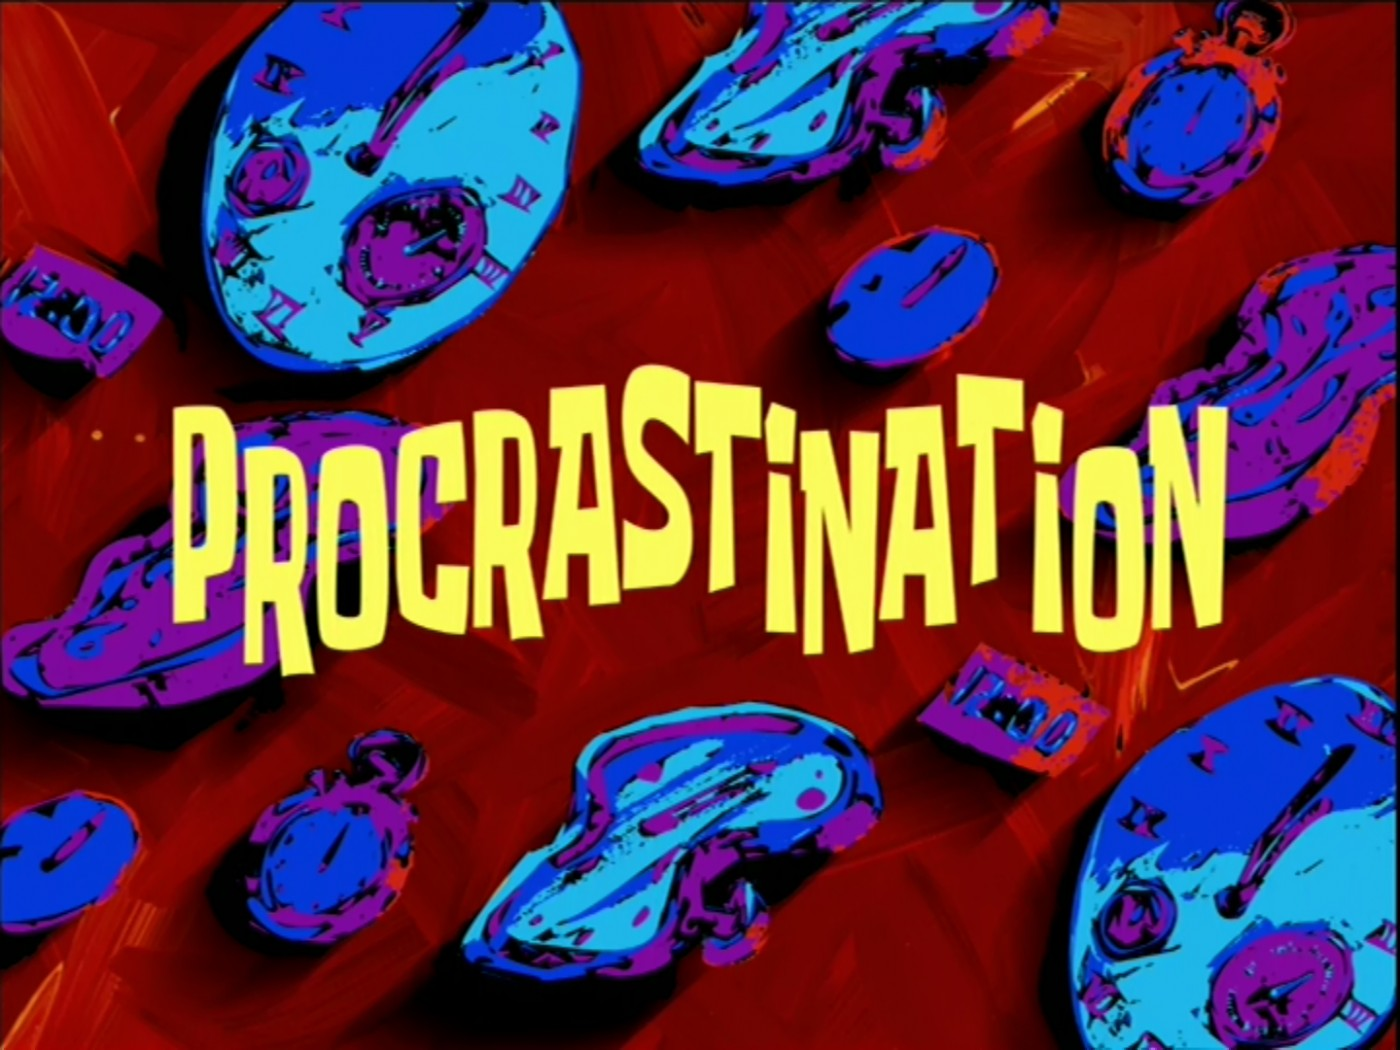 009 Procrastinationtranscript Encyclopedia Spongebobia Fandom Spongebob Writing Essay The Latestcb201806220 Gif Font For Hours Meme Rap Surprising 1400